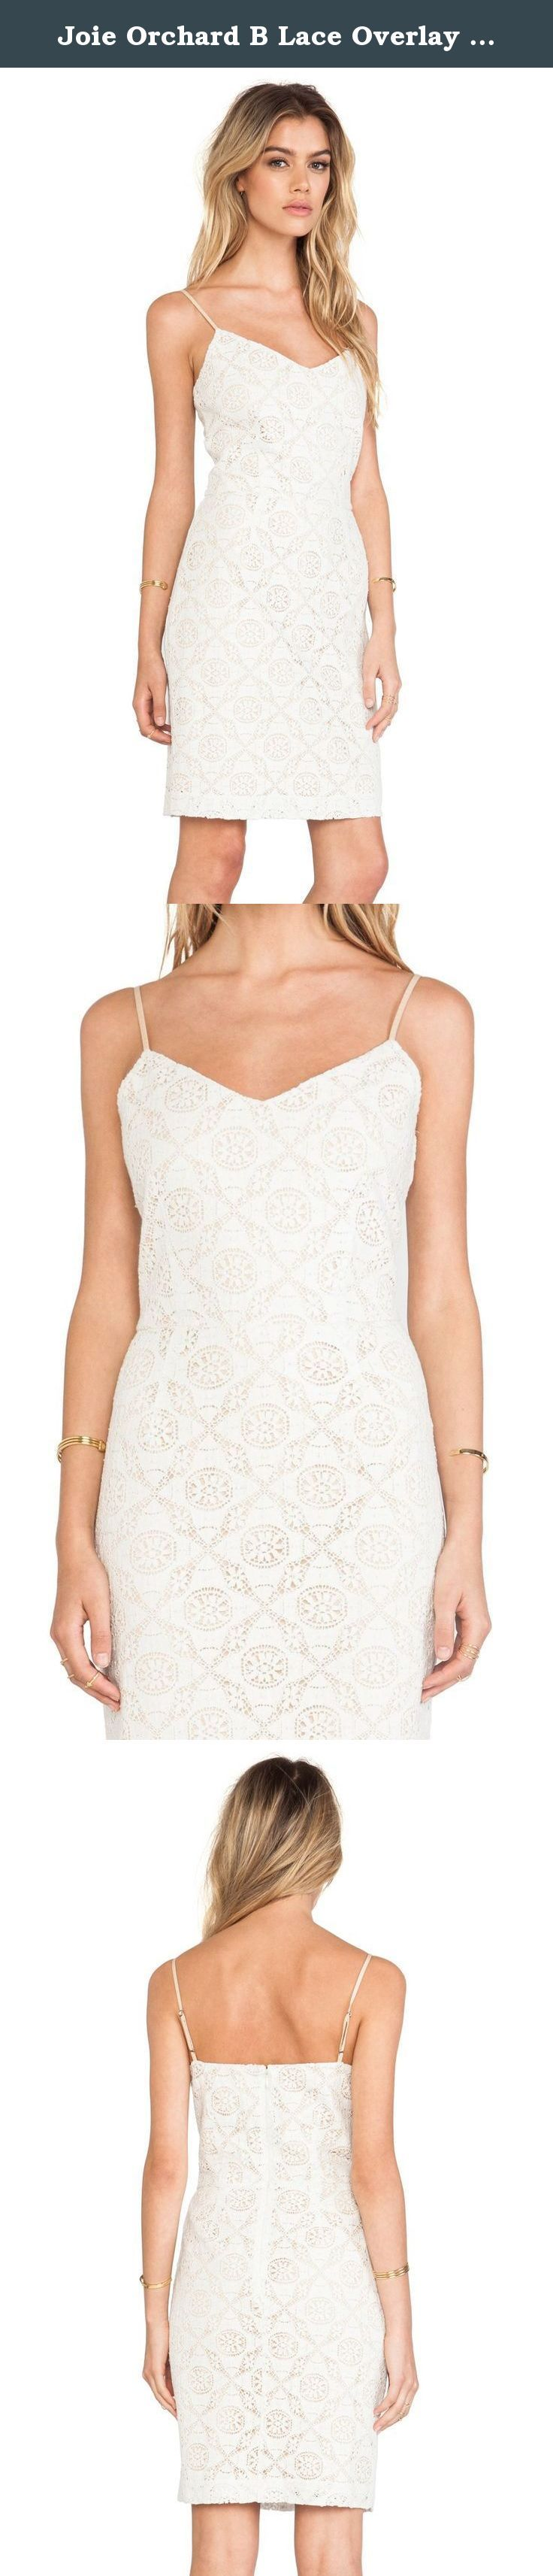 Joie Orchard B Lace Overlay Off White Dress Size Large. 100% Cotton Crochet overlay dress in off white or beige color. Rear zip and fully adjustable shoulder straps. Hits just about the knee.